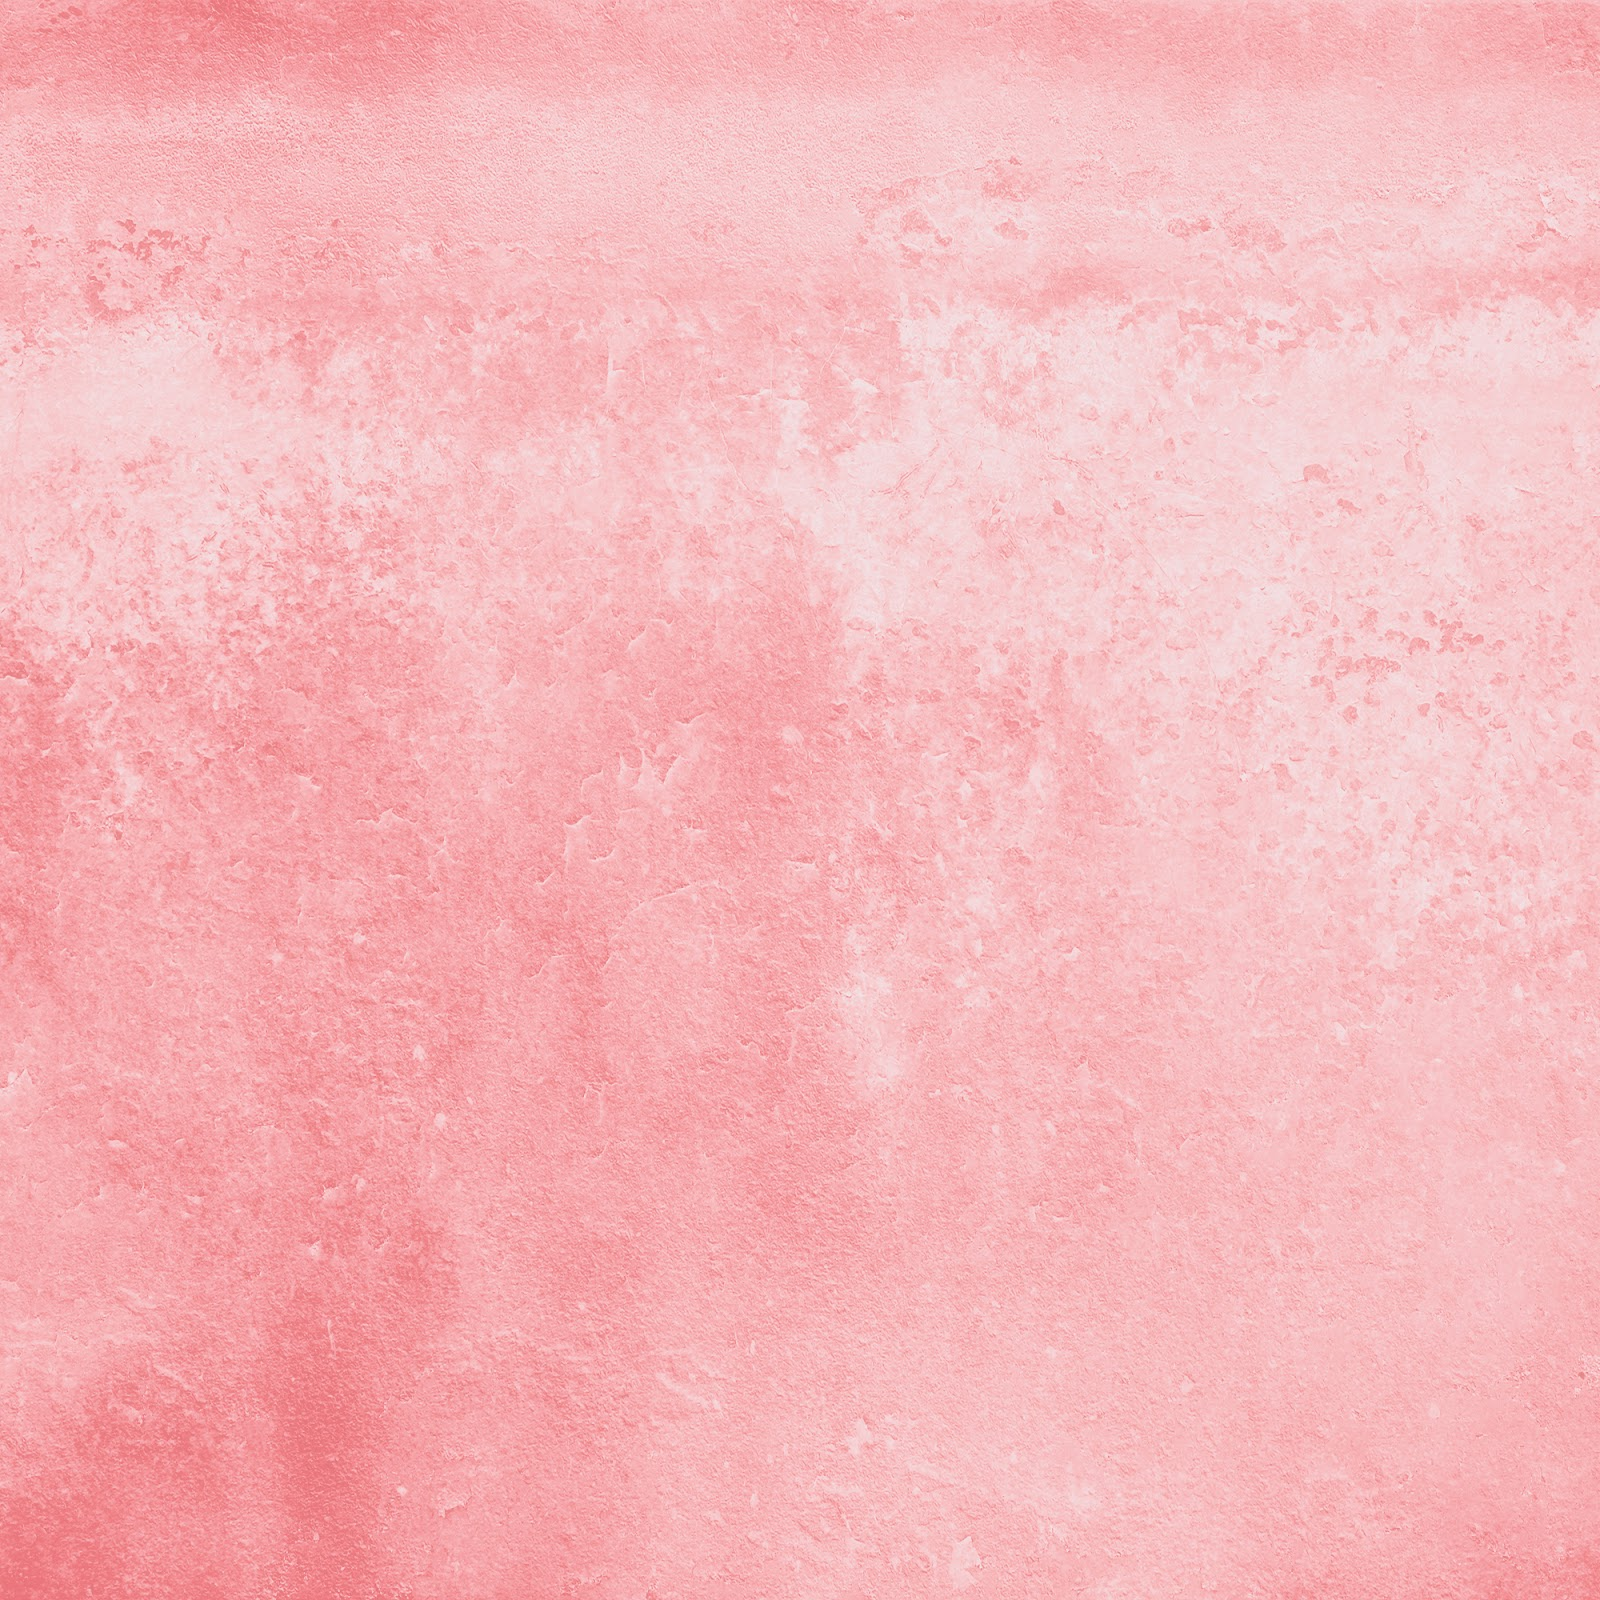 Pink Pastel Grunge Download: shadowhousecreations.blogspot.com/2010/07/textures-of-day-pink-and...